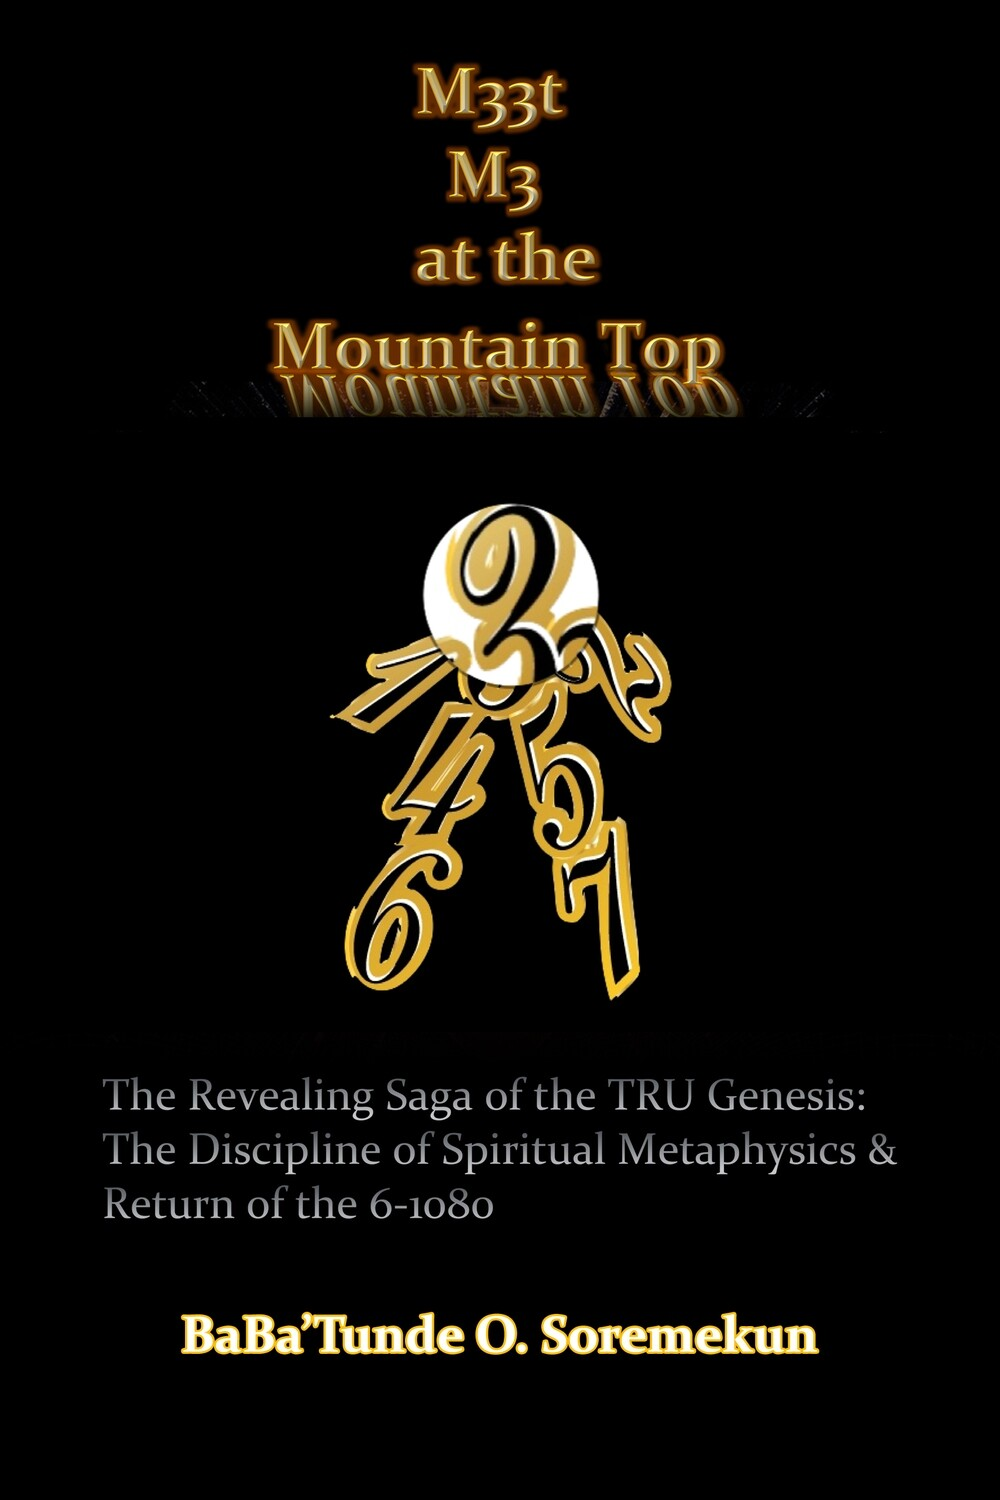 M33t M3 at the Mountain Top: The Revealing Saga of the TRU Genesis: The Discipline of Spiritual Metaphysics & Return of the 6-1080 Paperback – December 3, 2018